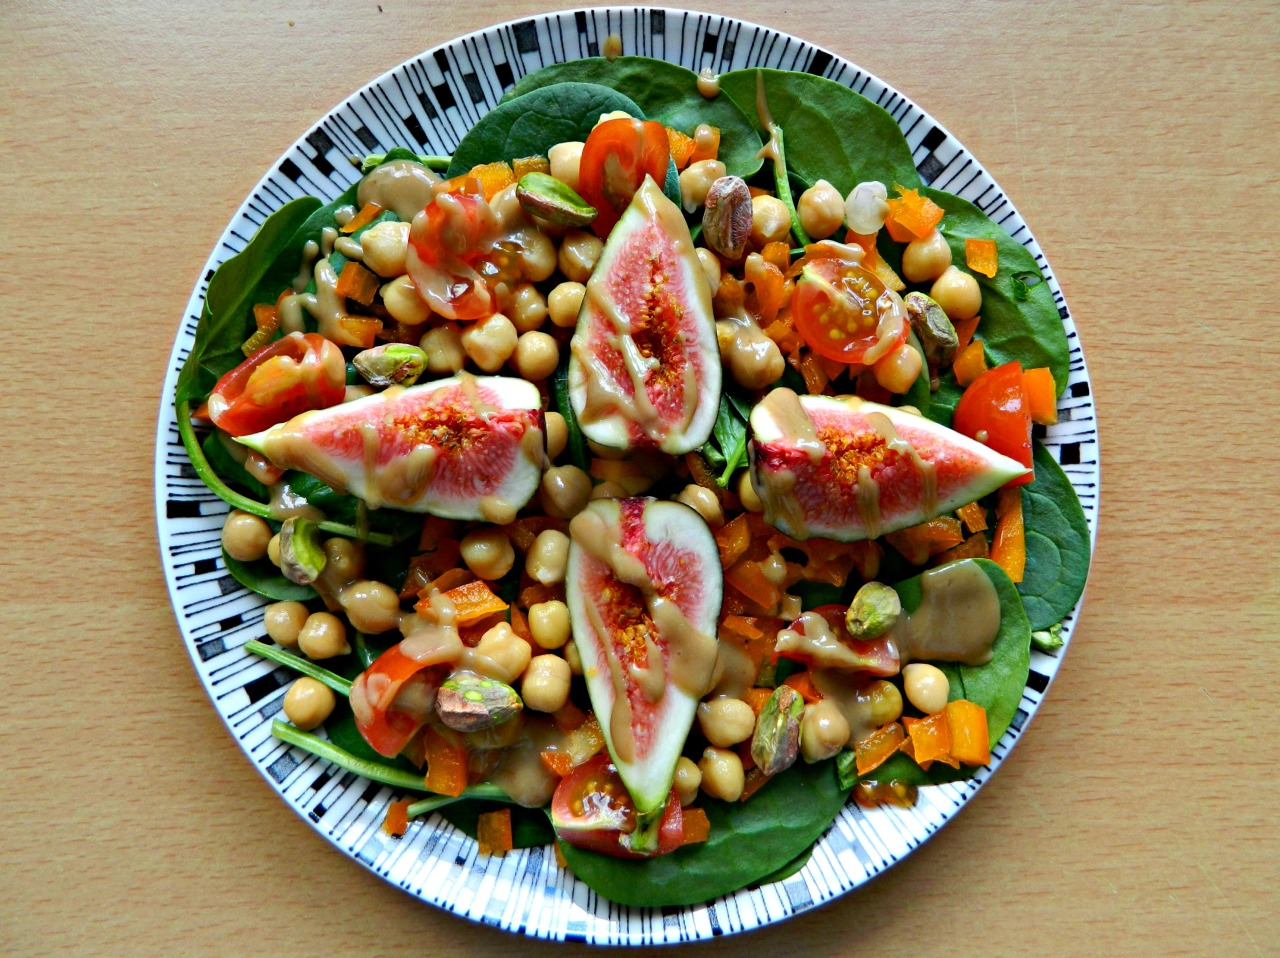 Spinach, orange bell pepper, cherry tomato, chickpea, pistachio and fig salad with a pomegranate molasses/tahini/orange juice dressing.